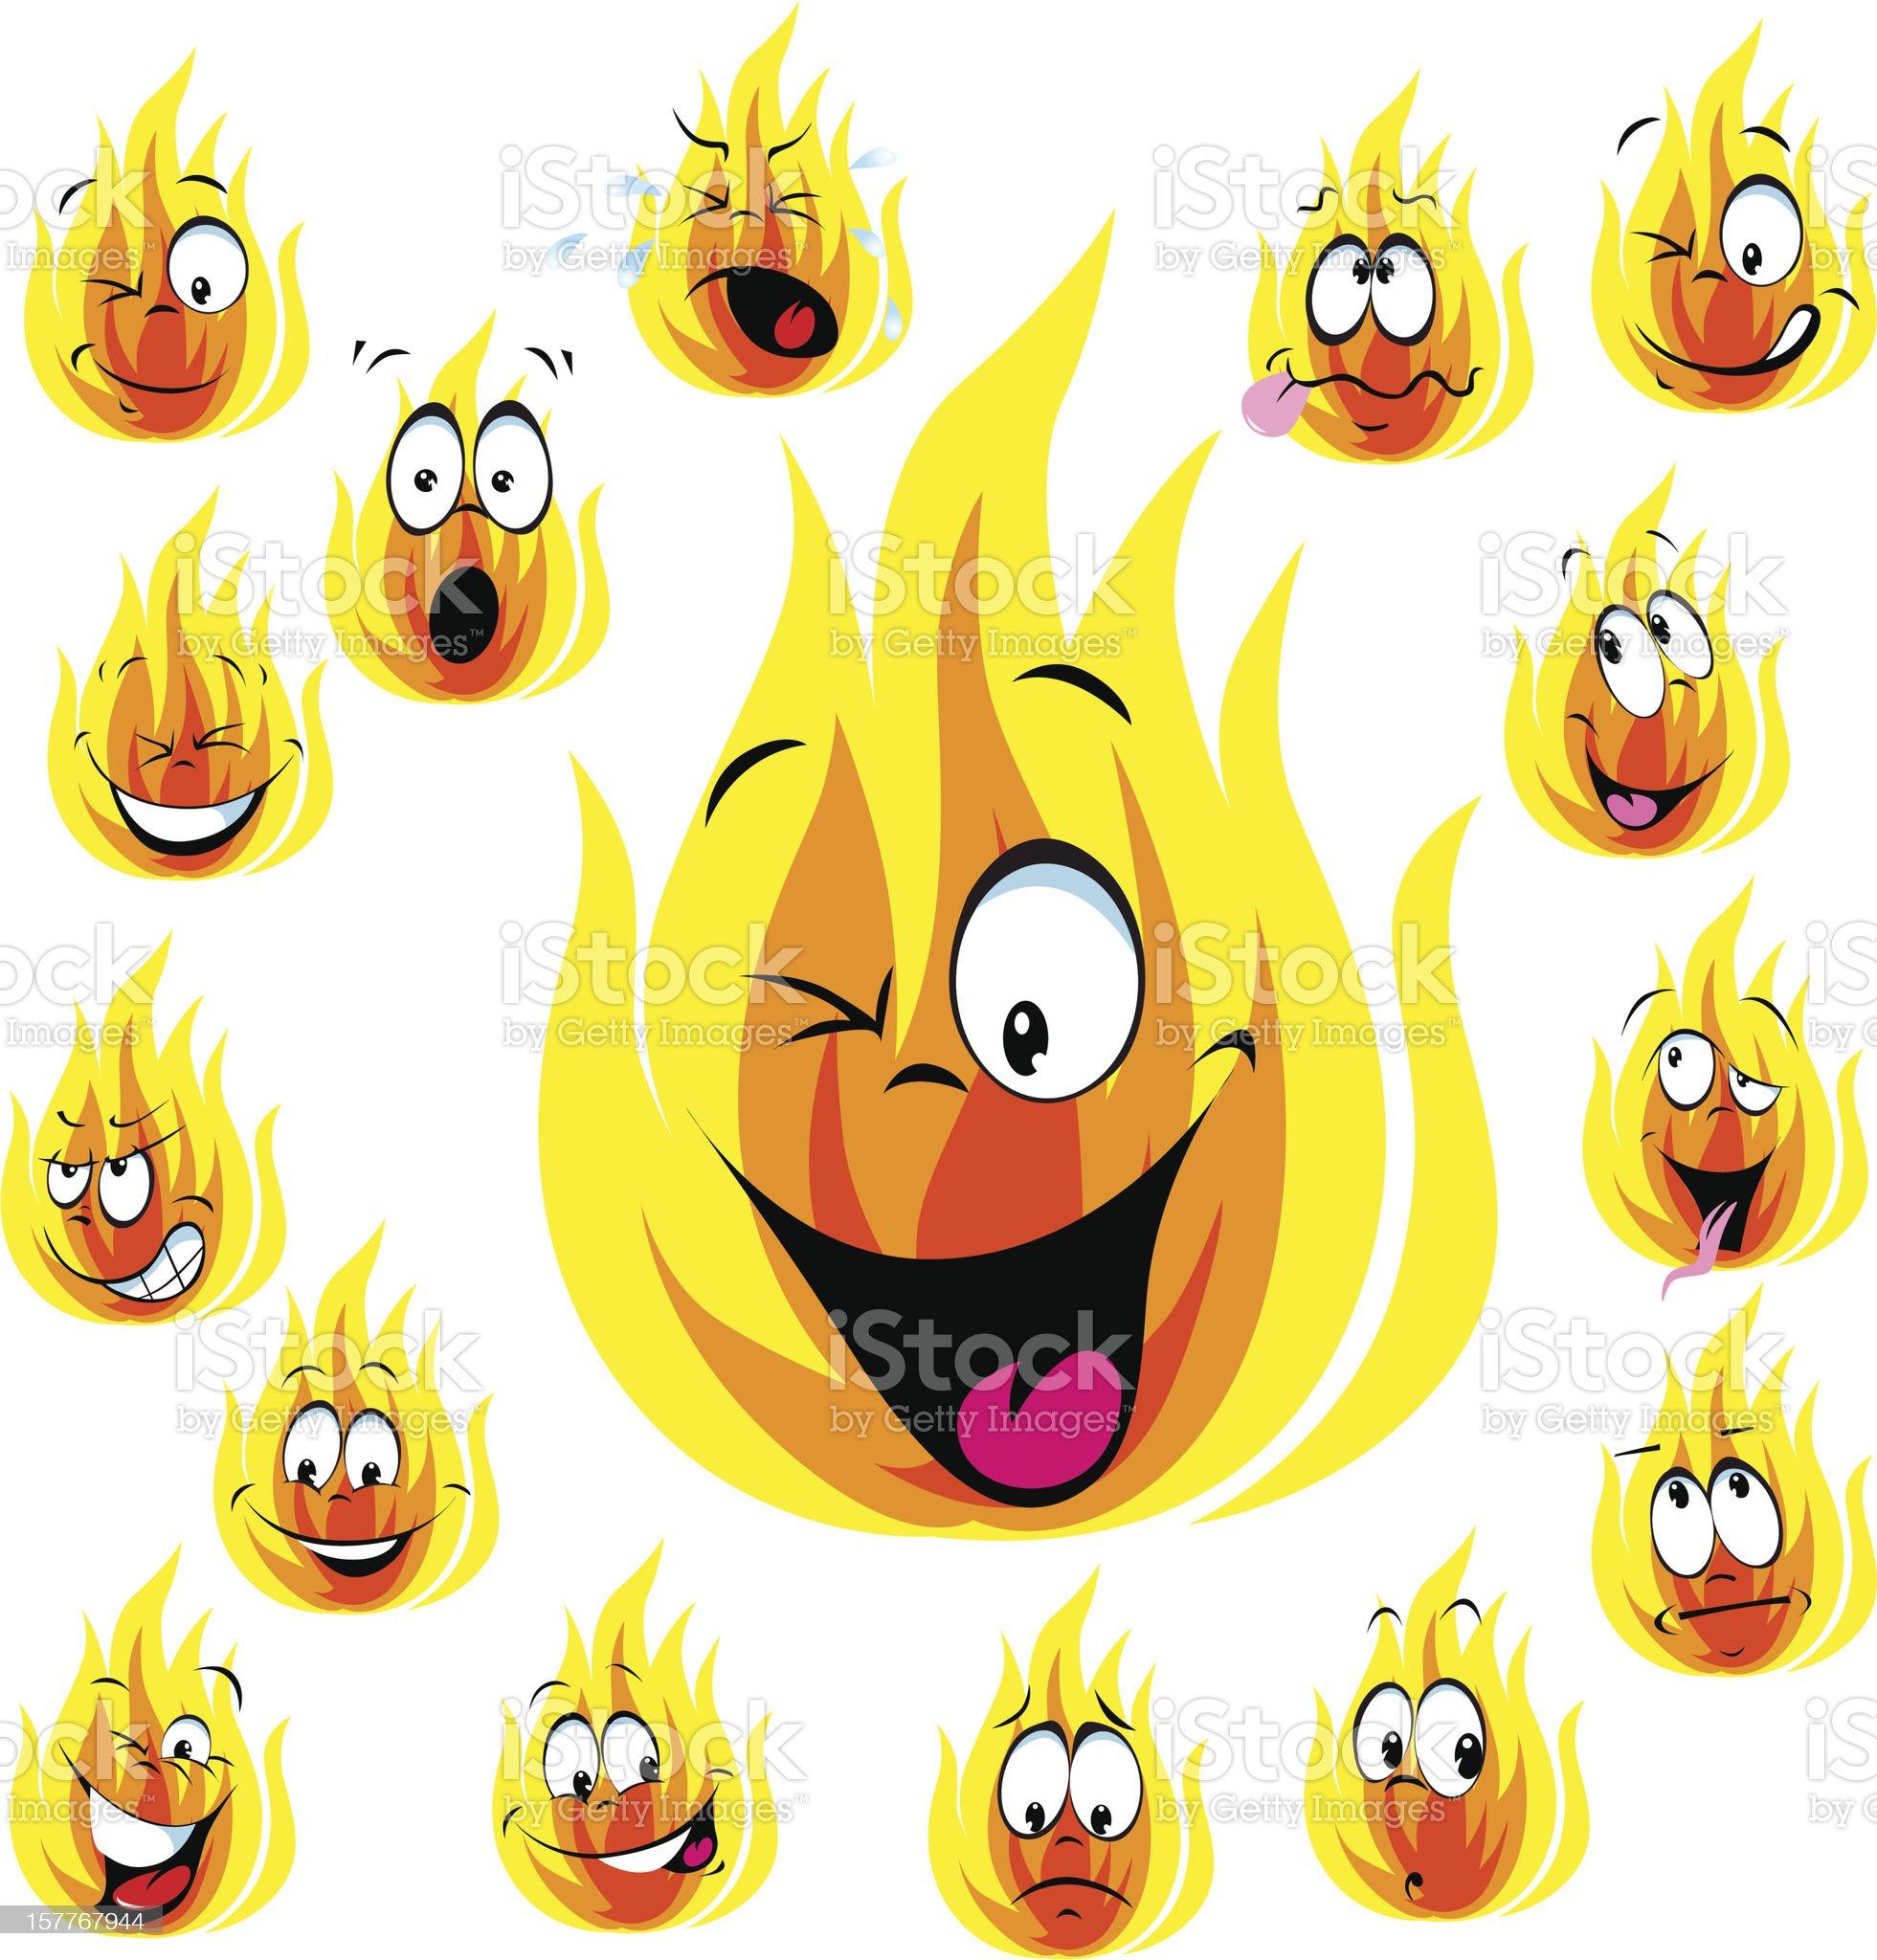 fire cartoon with many expressions royalty-free stock vector art